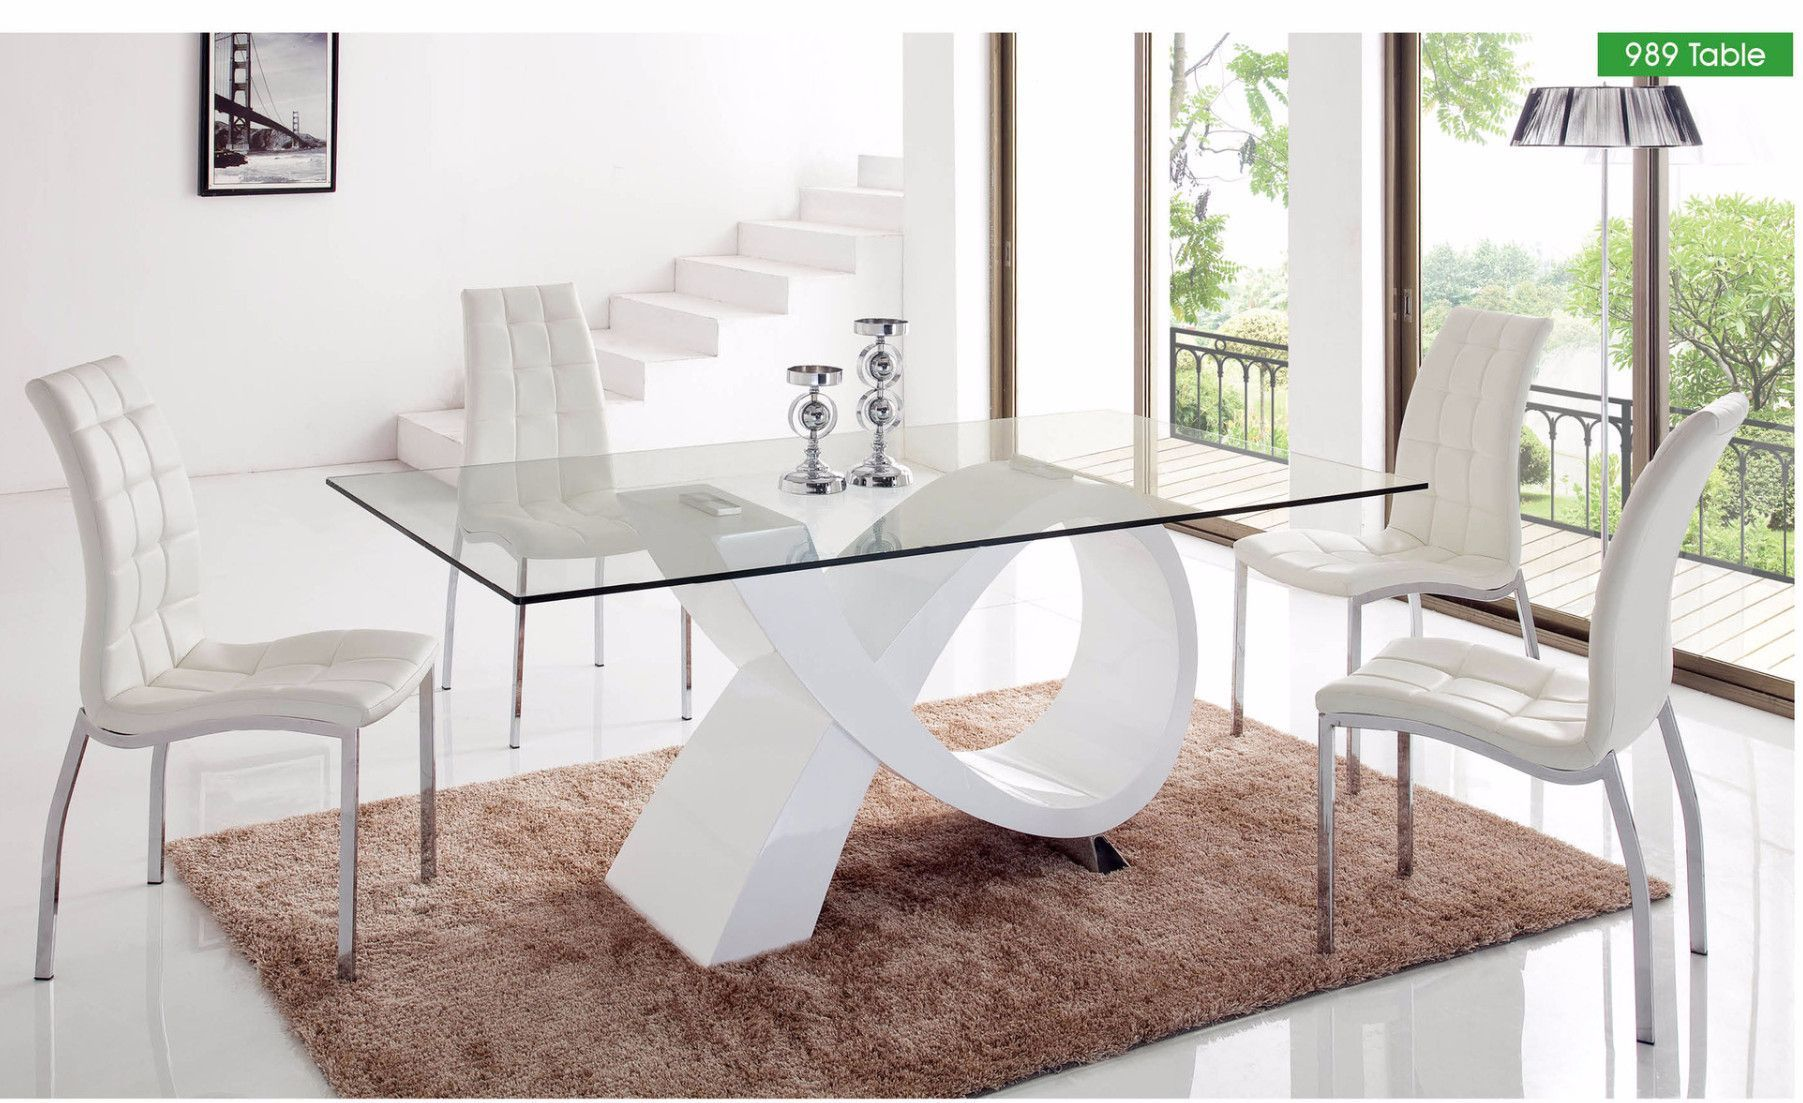 ESF Dining Table 989